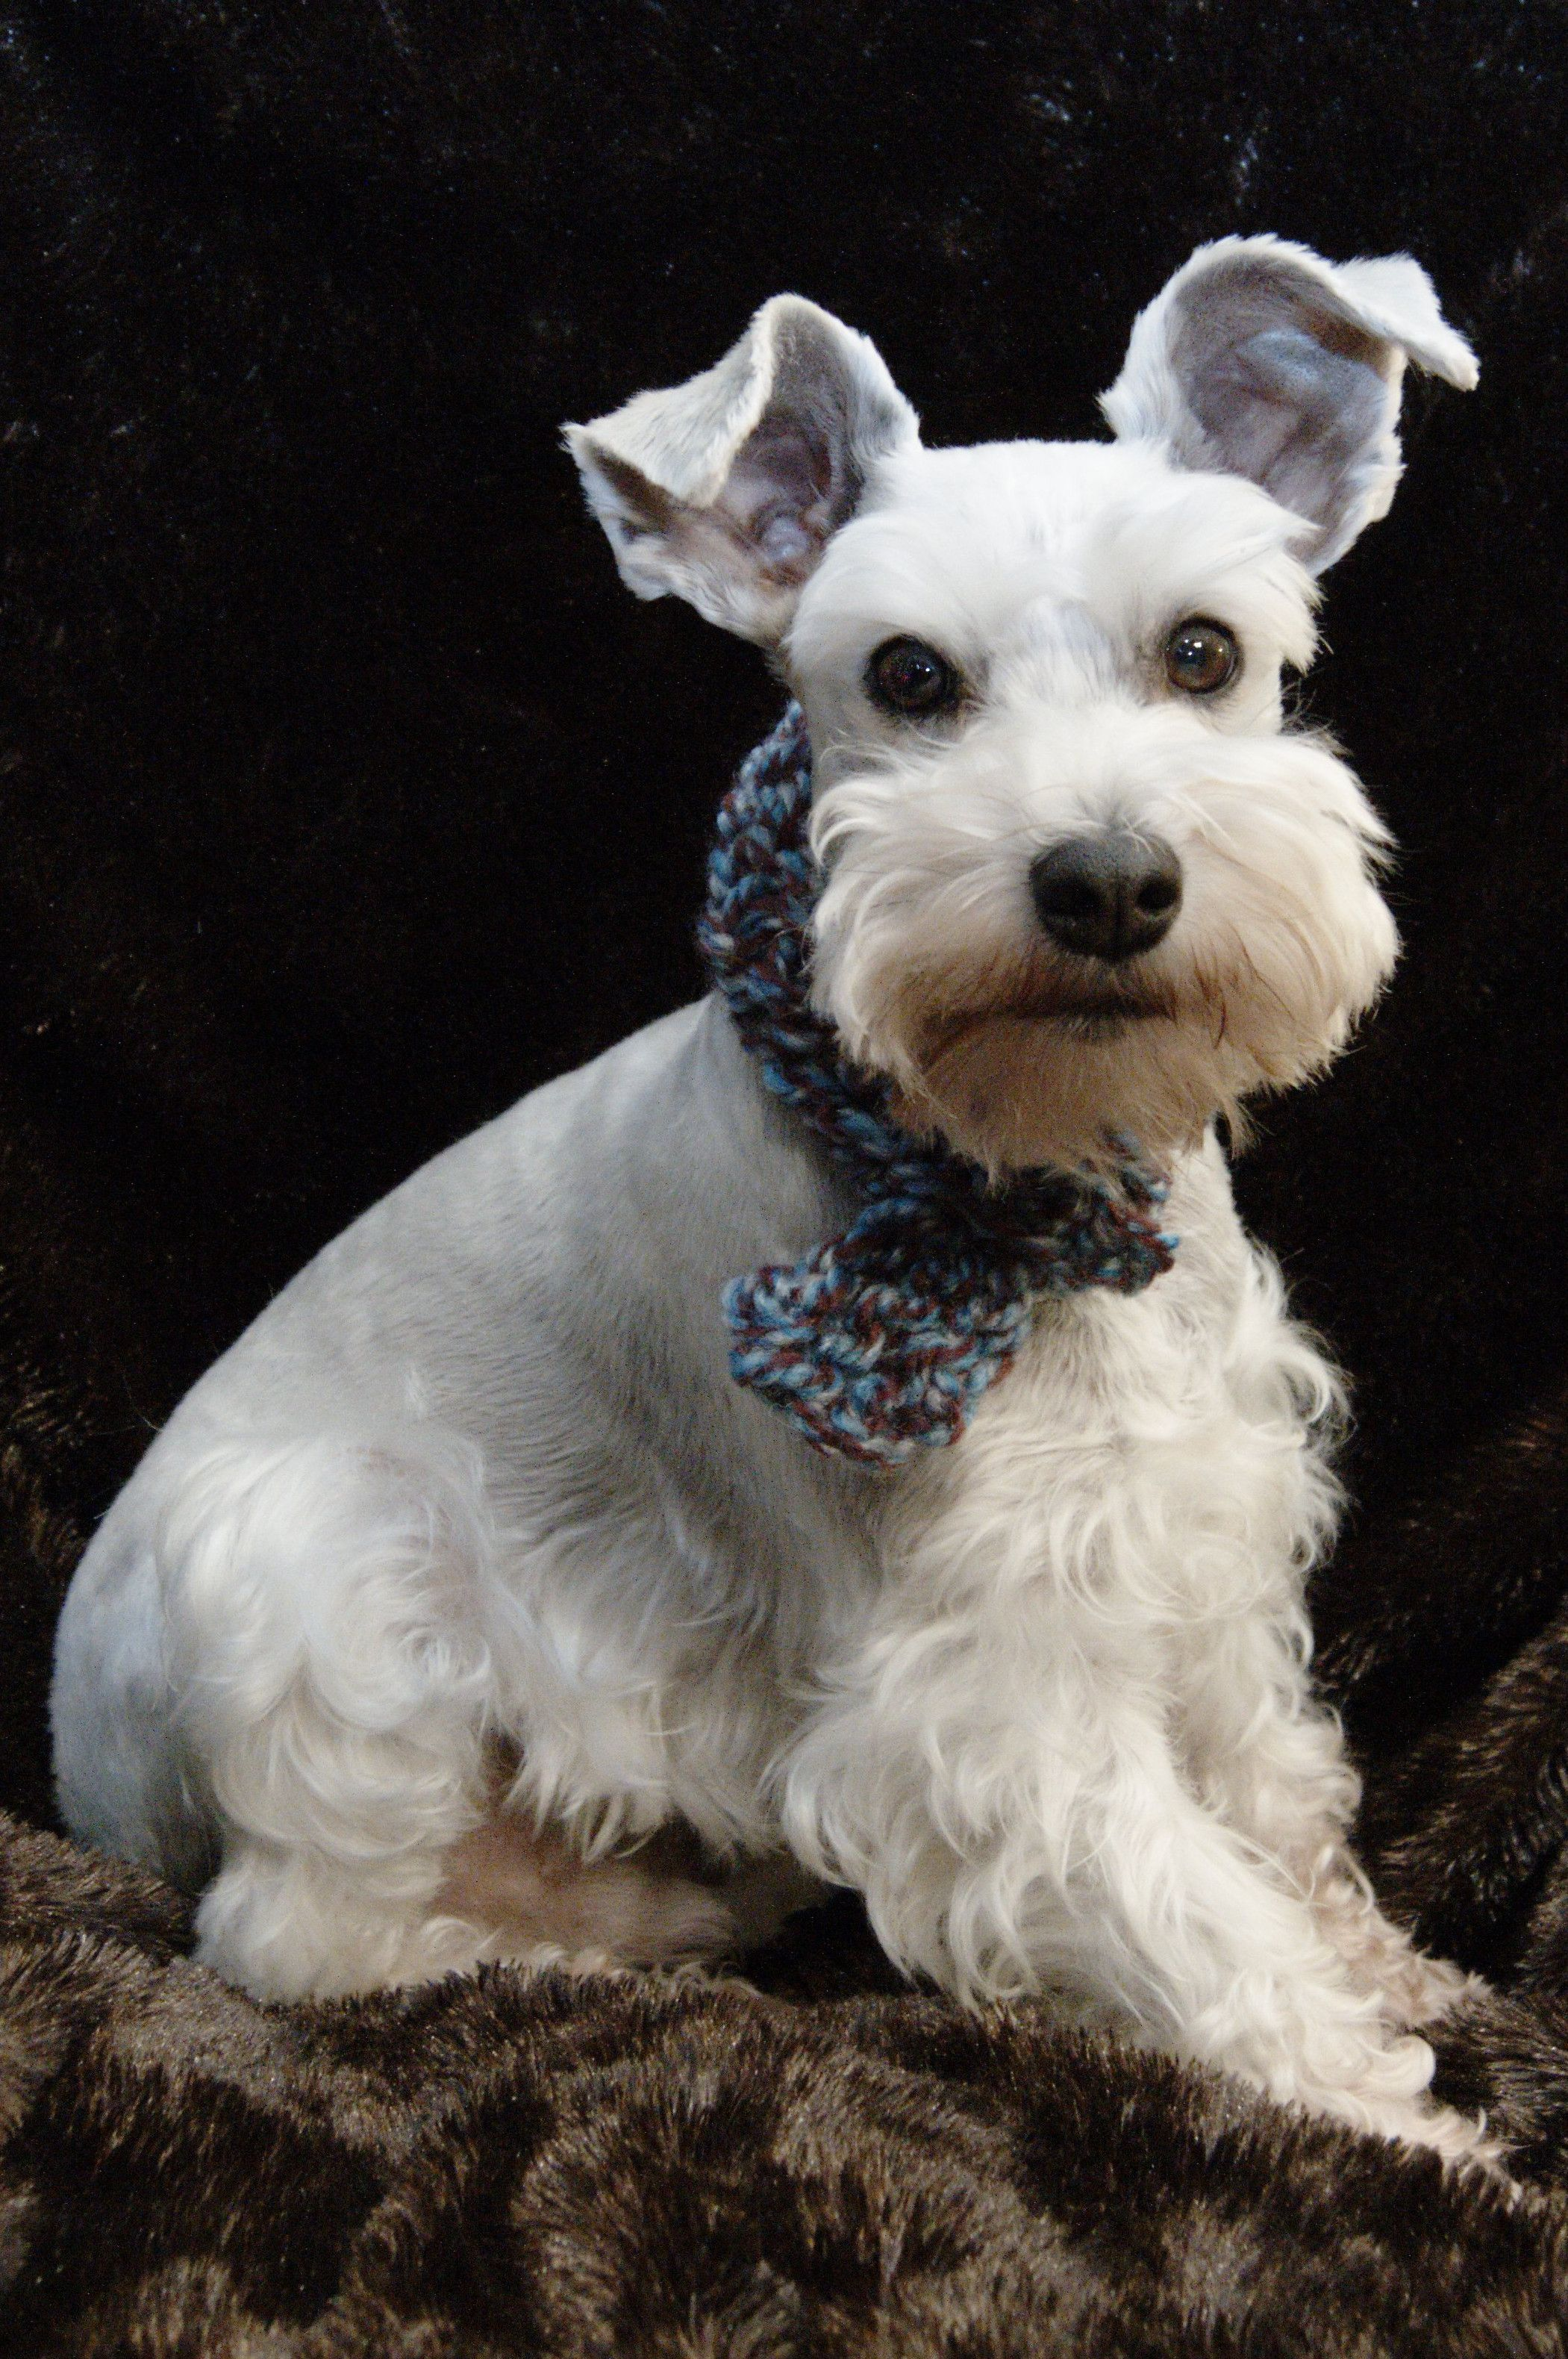 Kodiak Loves Wearing His Scarf From Scotland White Mini Schnauzer Miniature Schnauzer Schnauzer Miniature Schnauzer Puppies